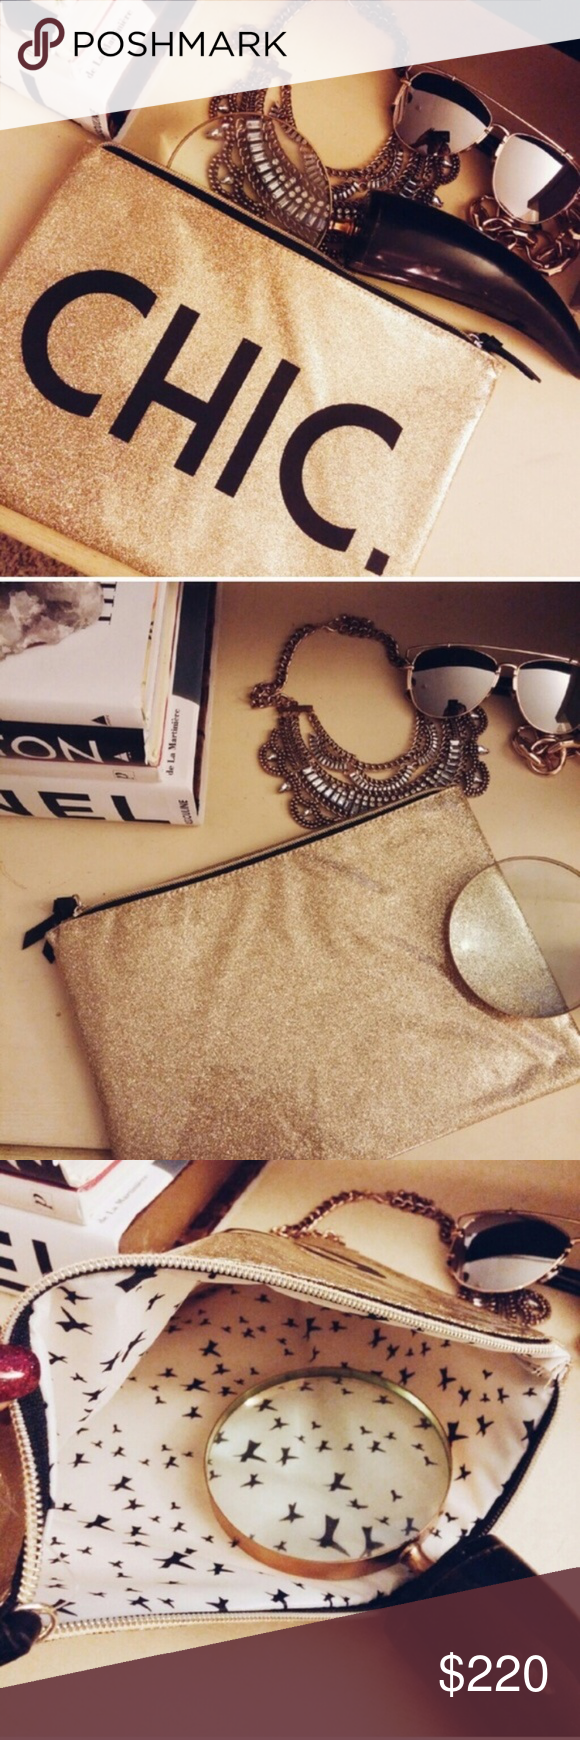 Accessories | CHIC gold glitter clutch This clutch is *stand out* & somehow neutral at the same time! gold glitter background (glitter does not rub off, this is smooth, shiny plastic feel) on front & back // black letters CHIC adorn this adorable bag // brand new never worn // zipper closure // fully lined // lightweight and durable... What else could a gal want?!  Take as a clutch for some serious day drinking (my fav brunch accessory!) OR travel with it on the go & at home as a cosmetics bag.  #goldglitterbackground